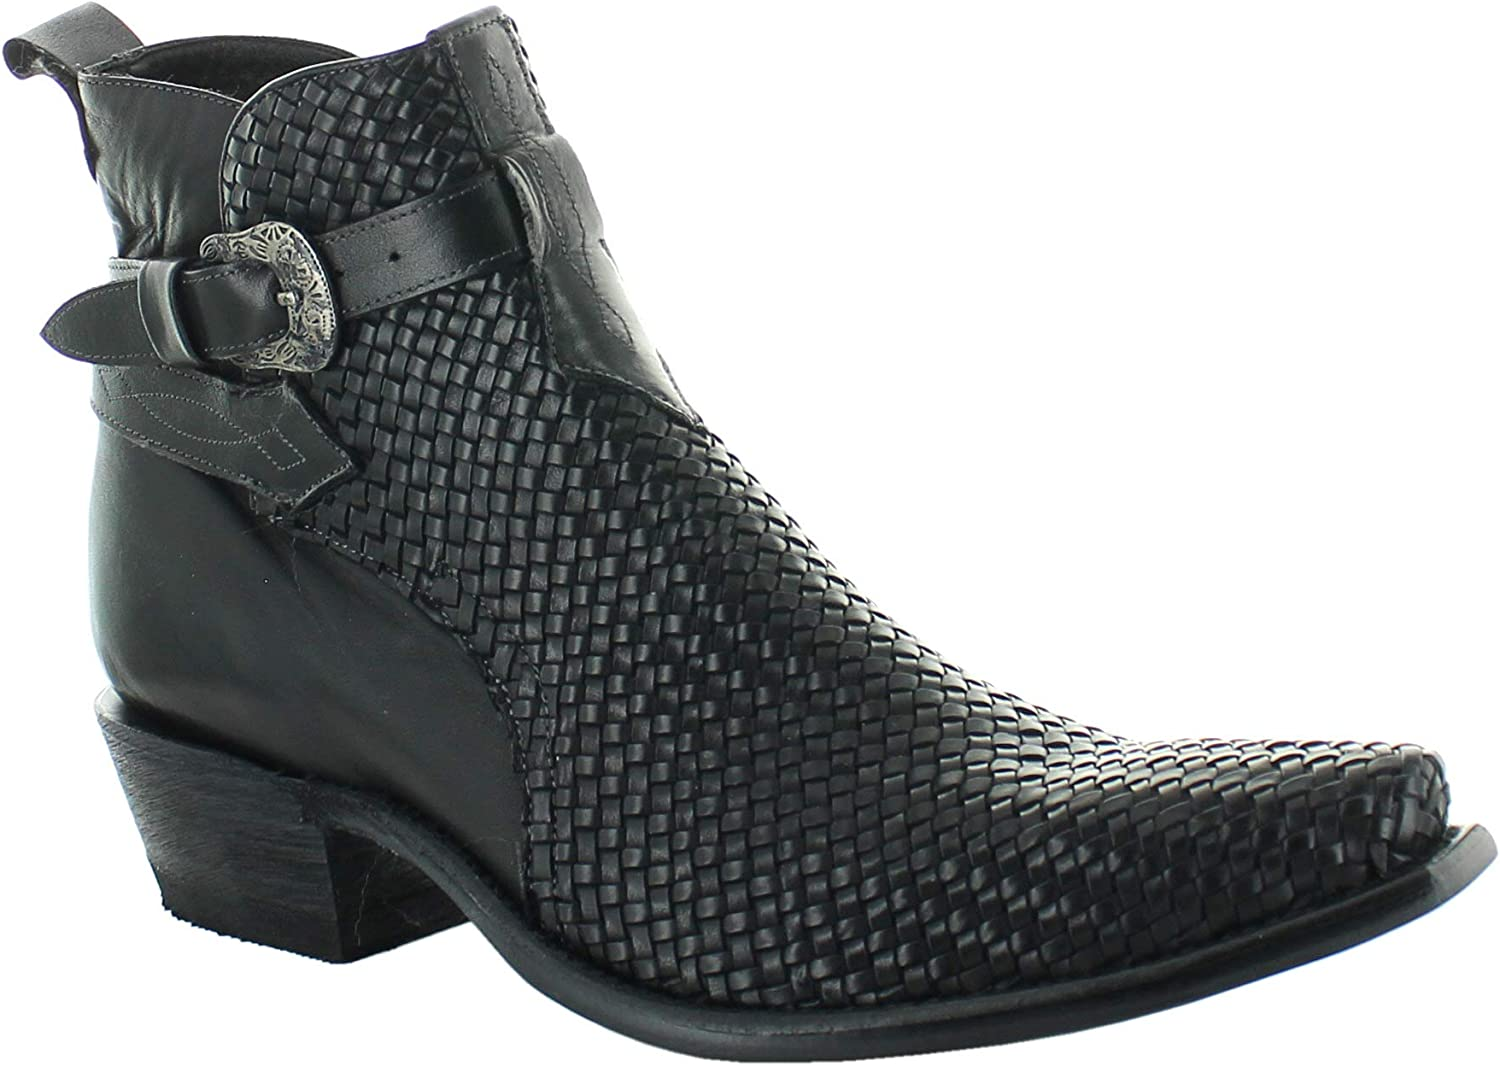 Men's Genuine Cowhide Leather Carter Boots Cheap Max 78% OFF mail order sales Handpainted